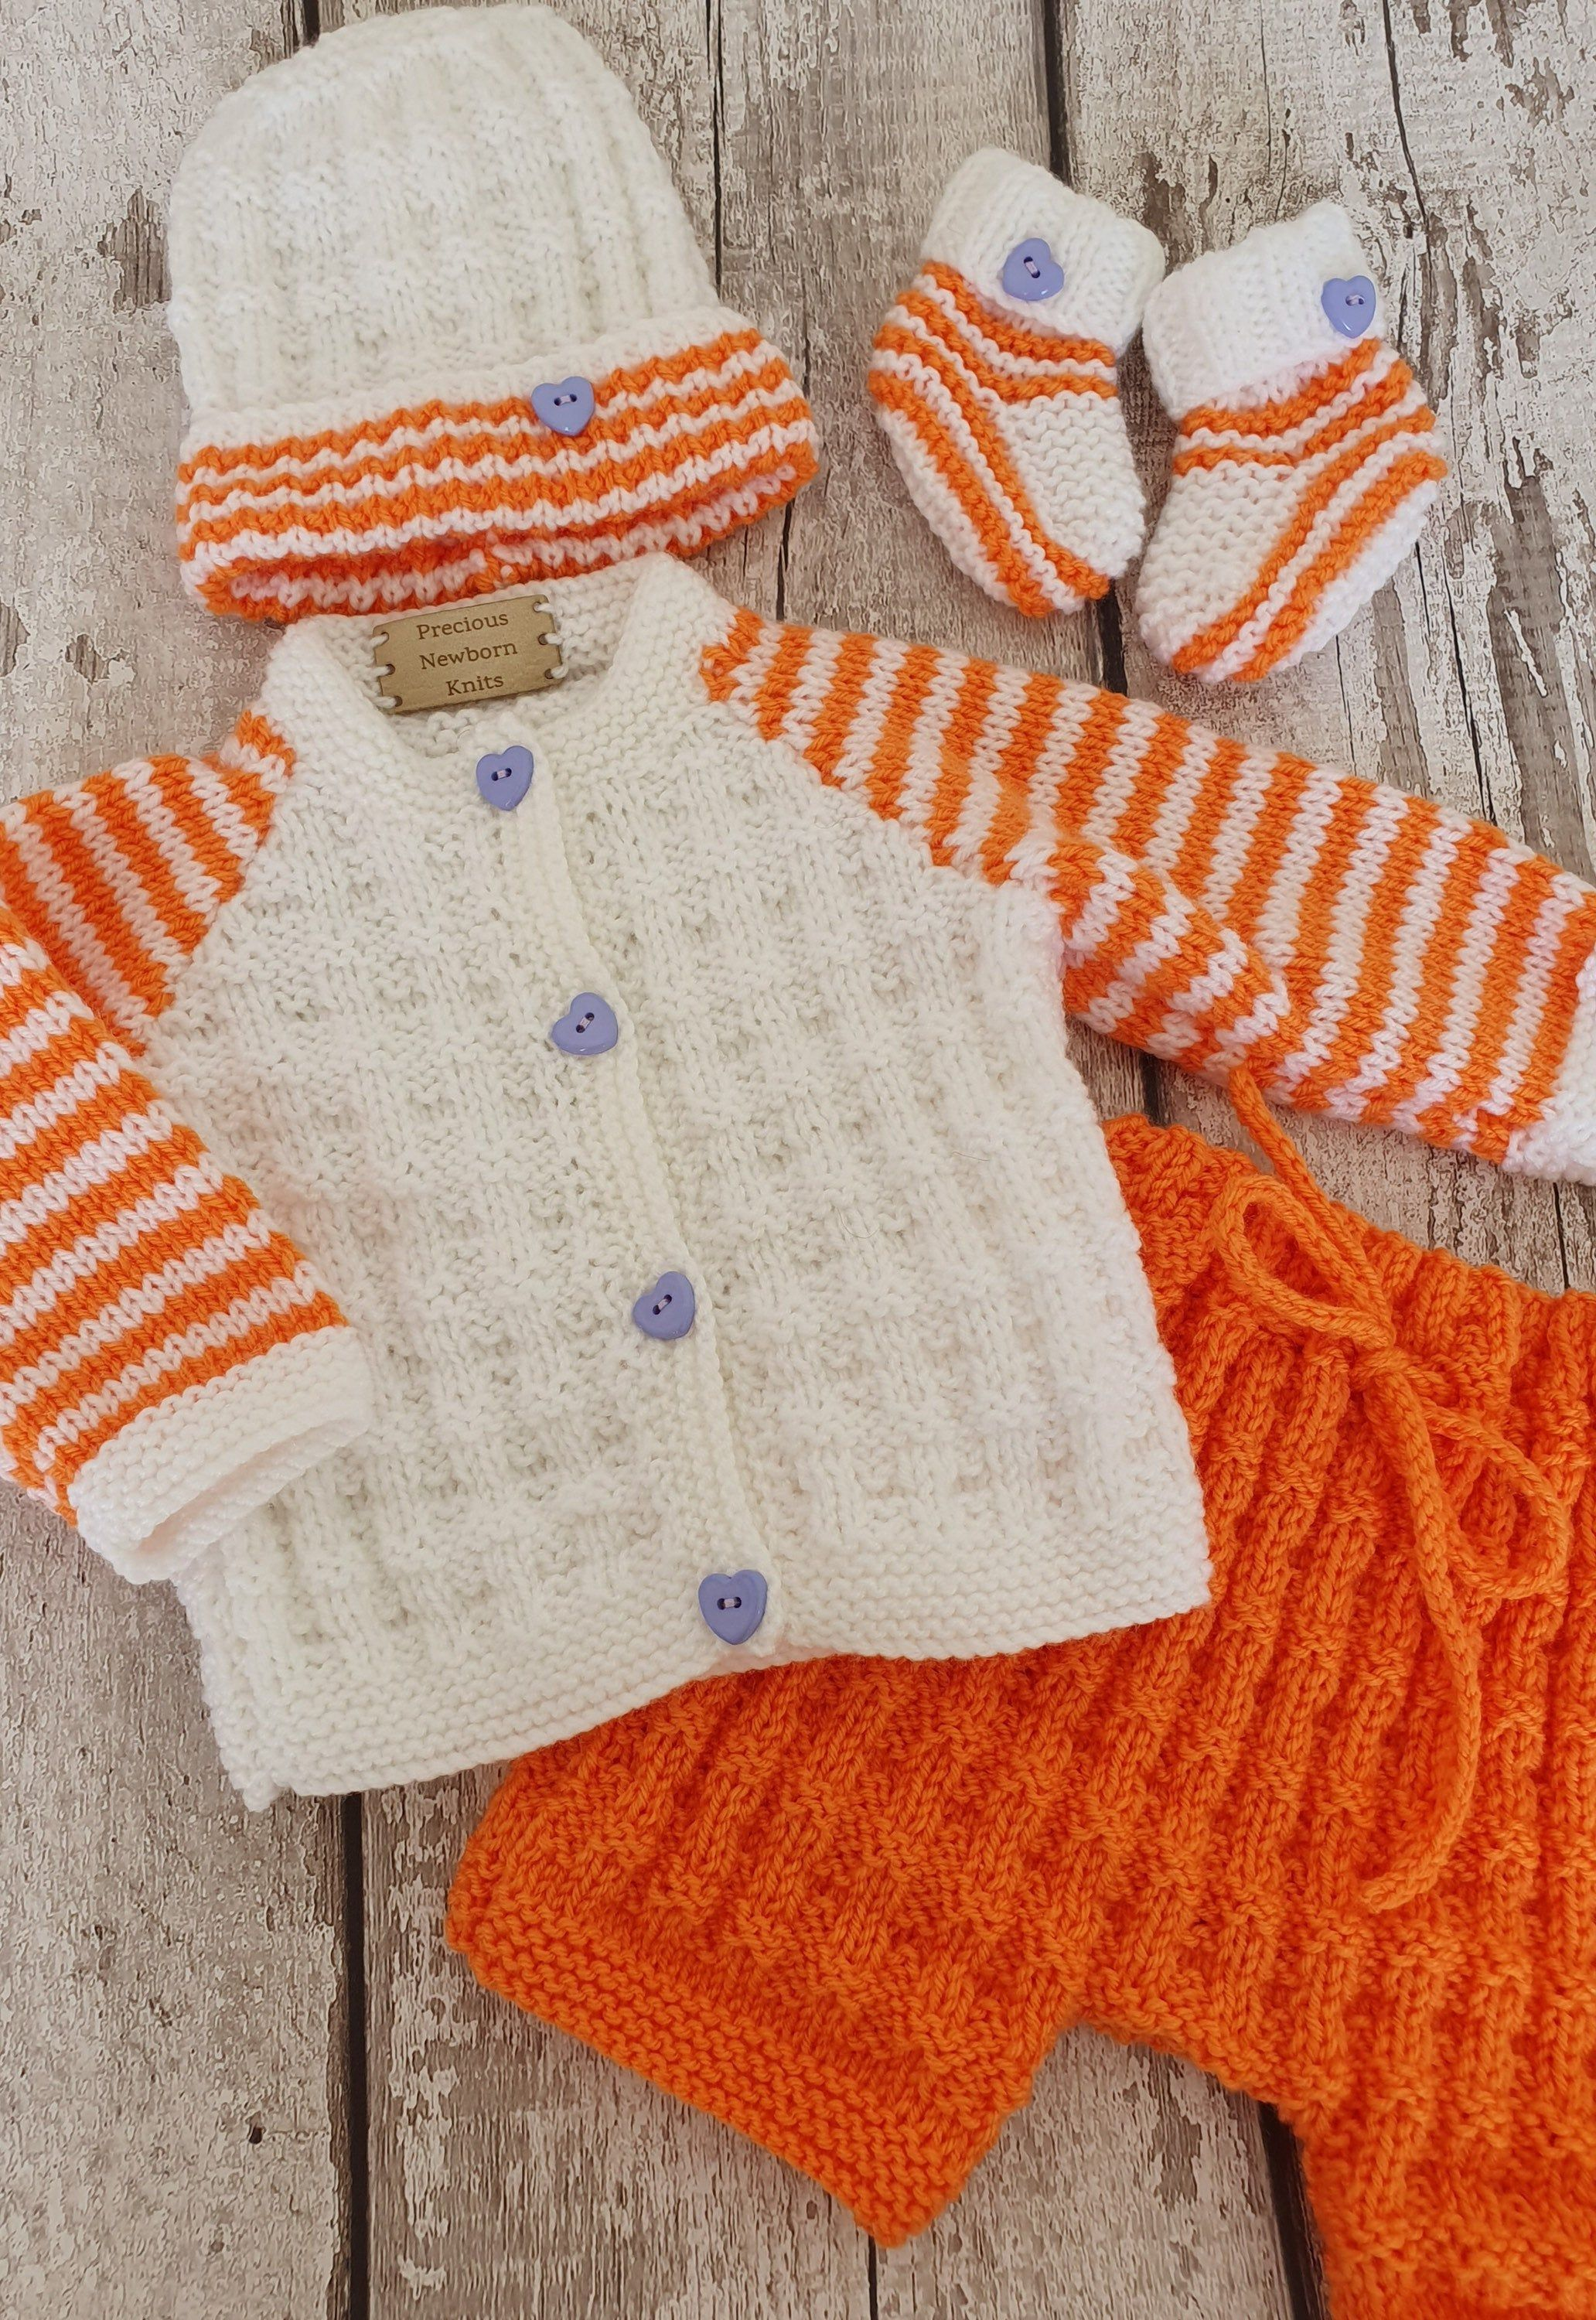 Handknitted baby sweater booties and hat